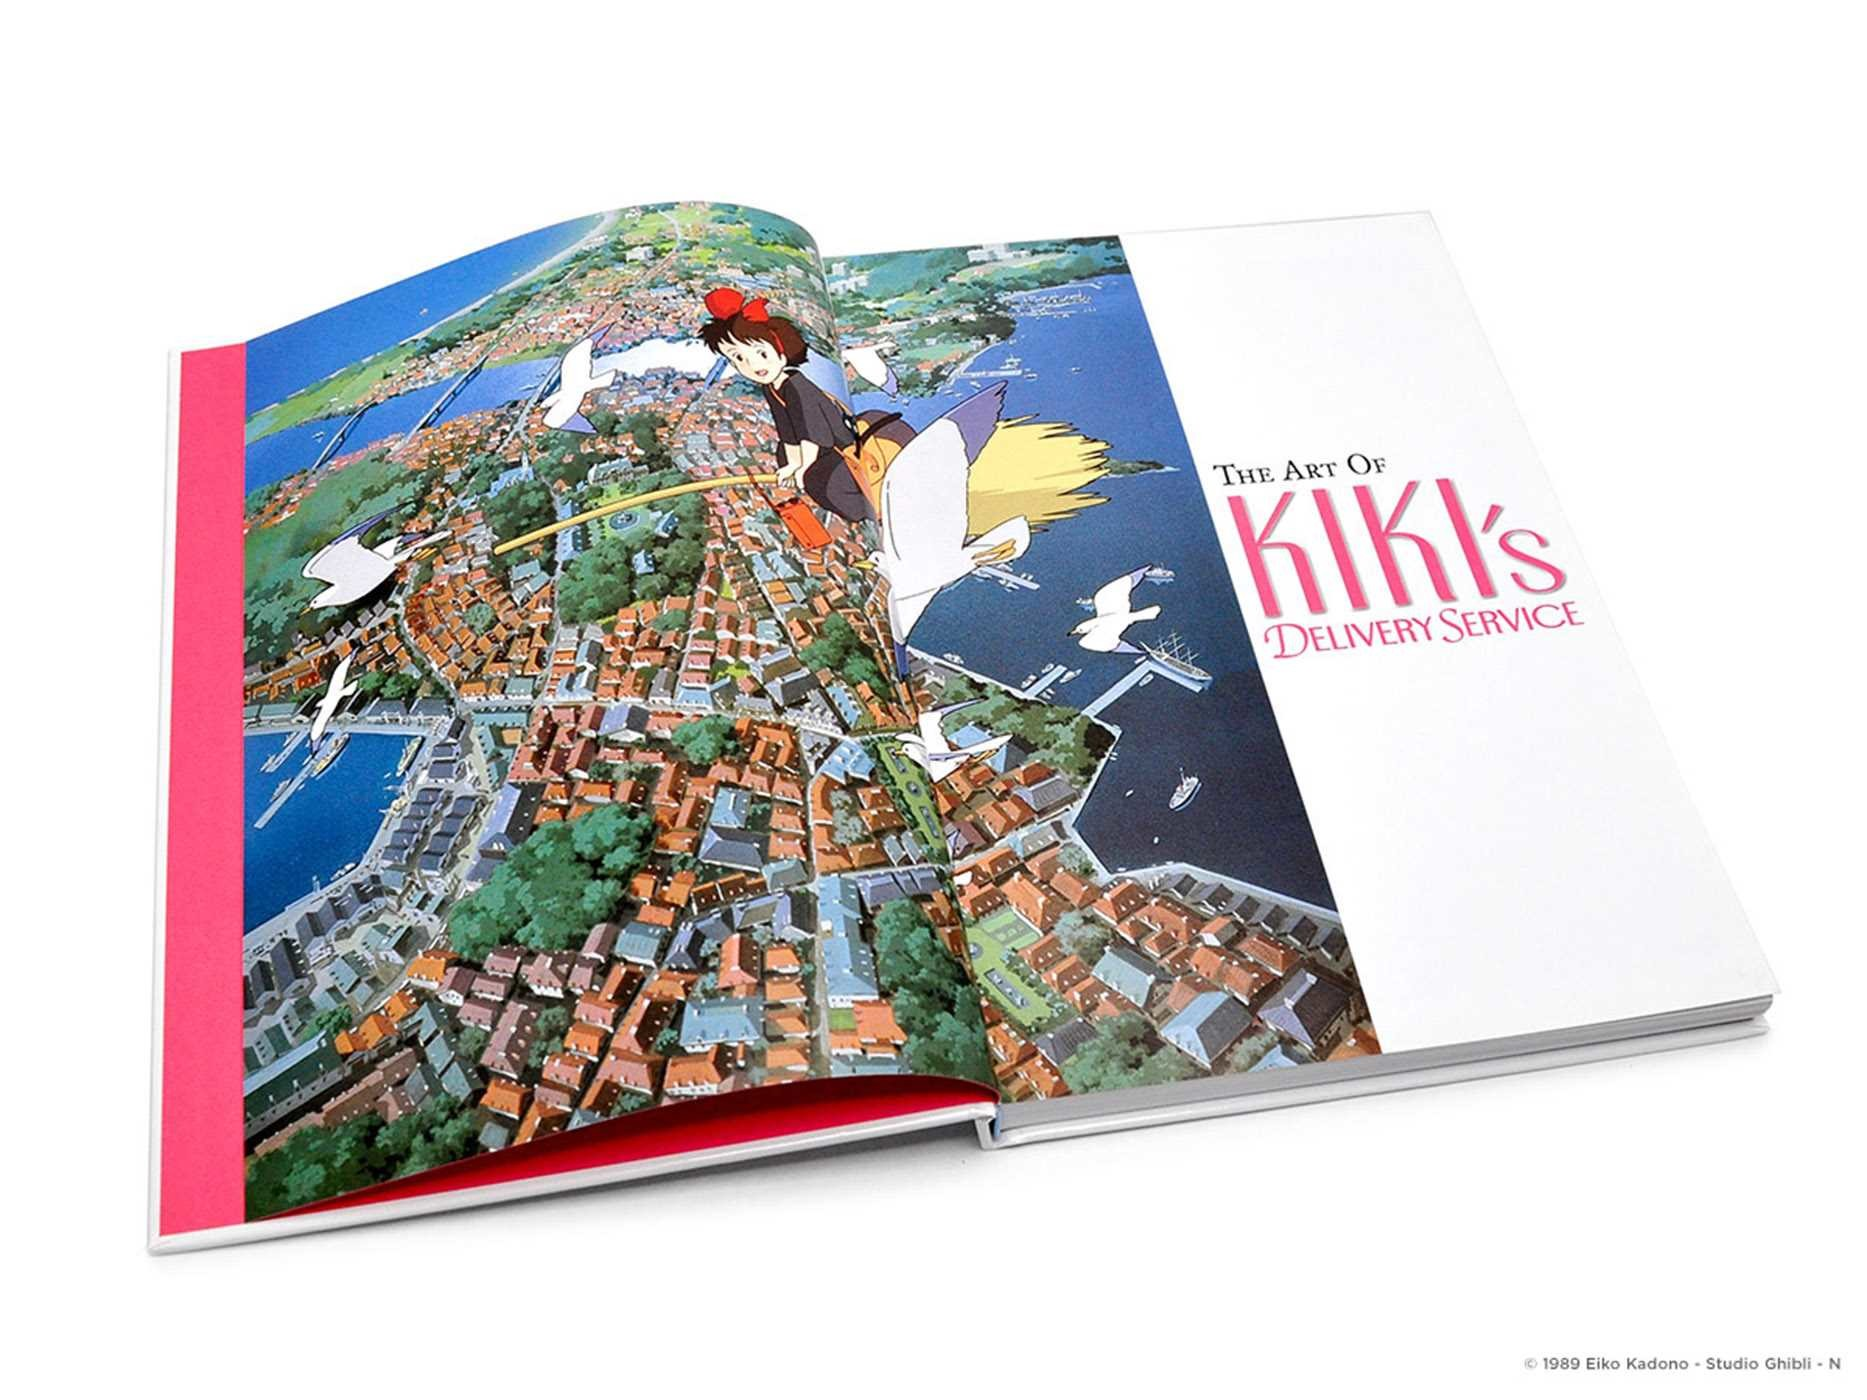 ... Art of kikis delivery service 9781421505930.in02 ...